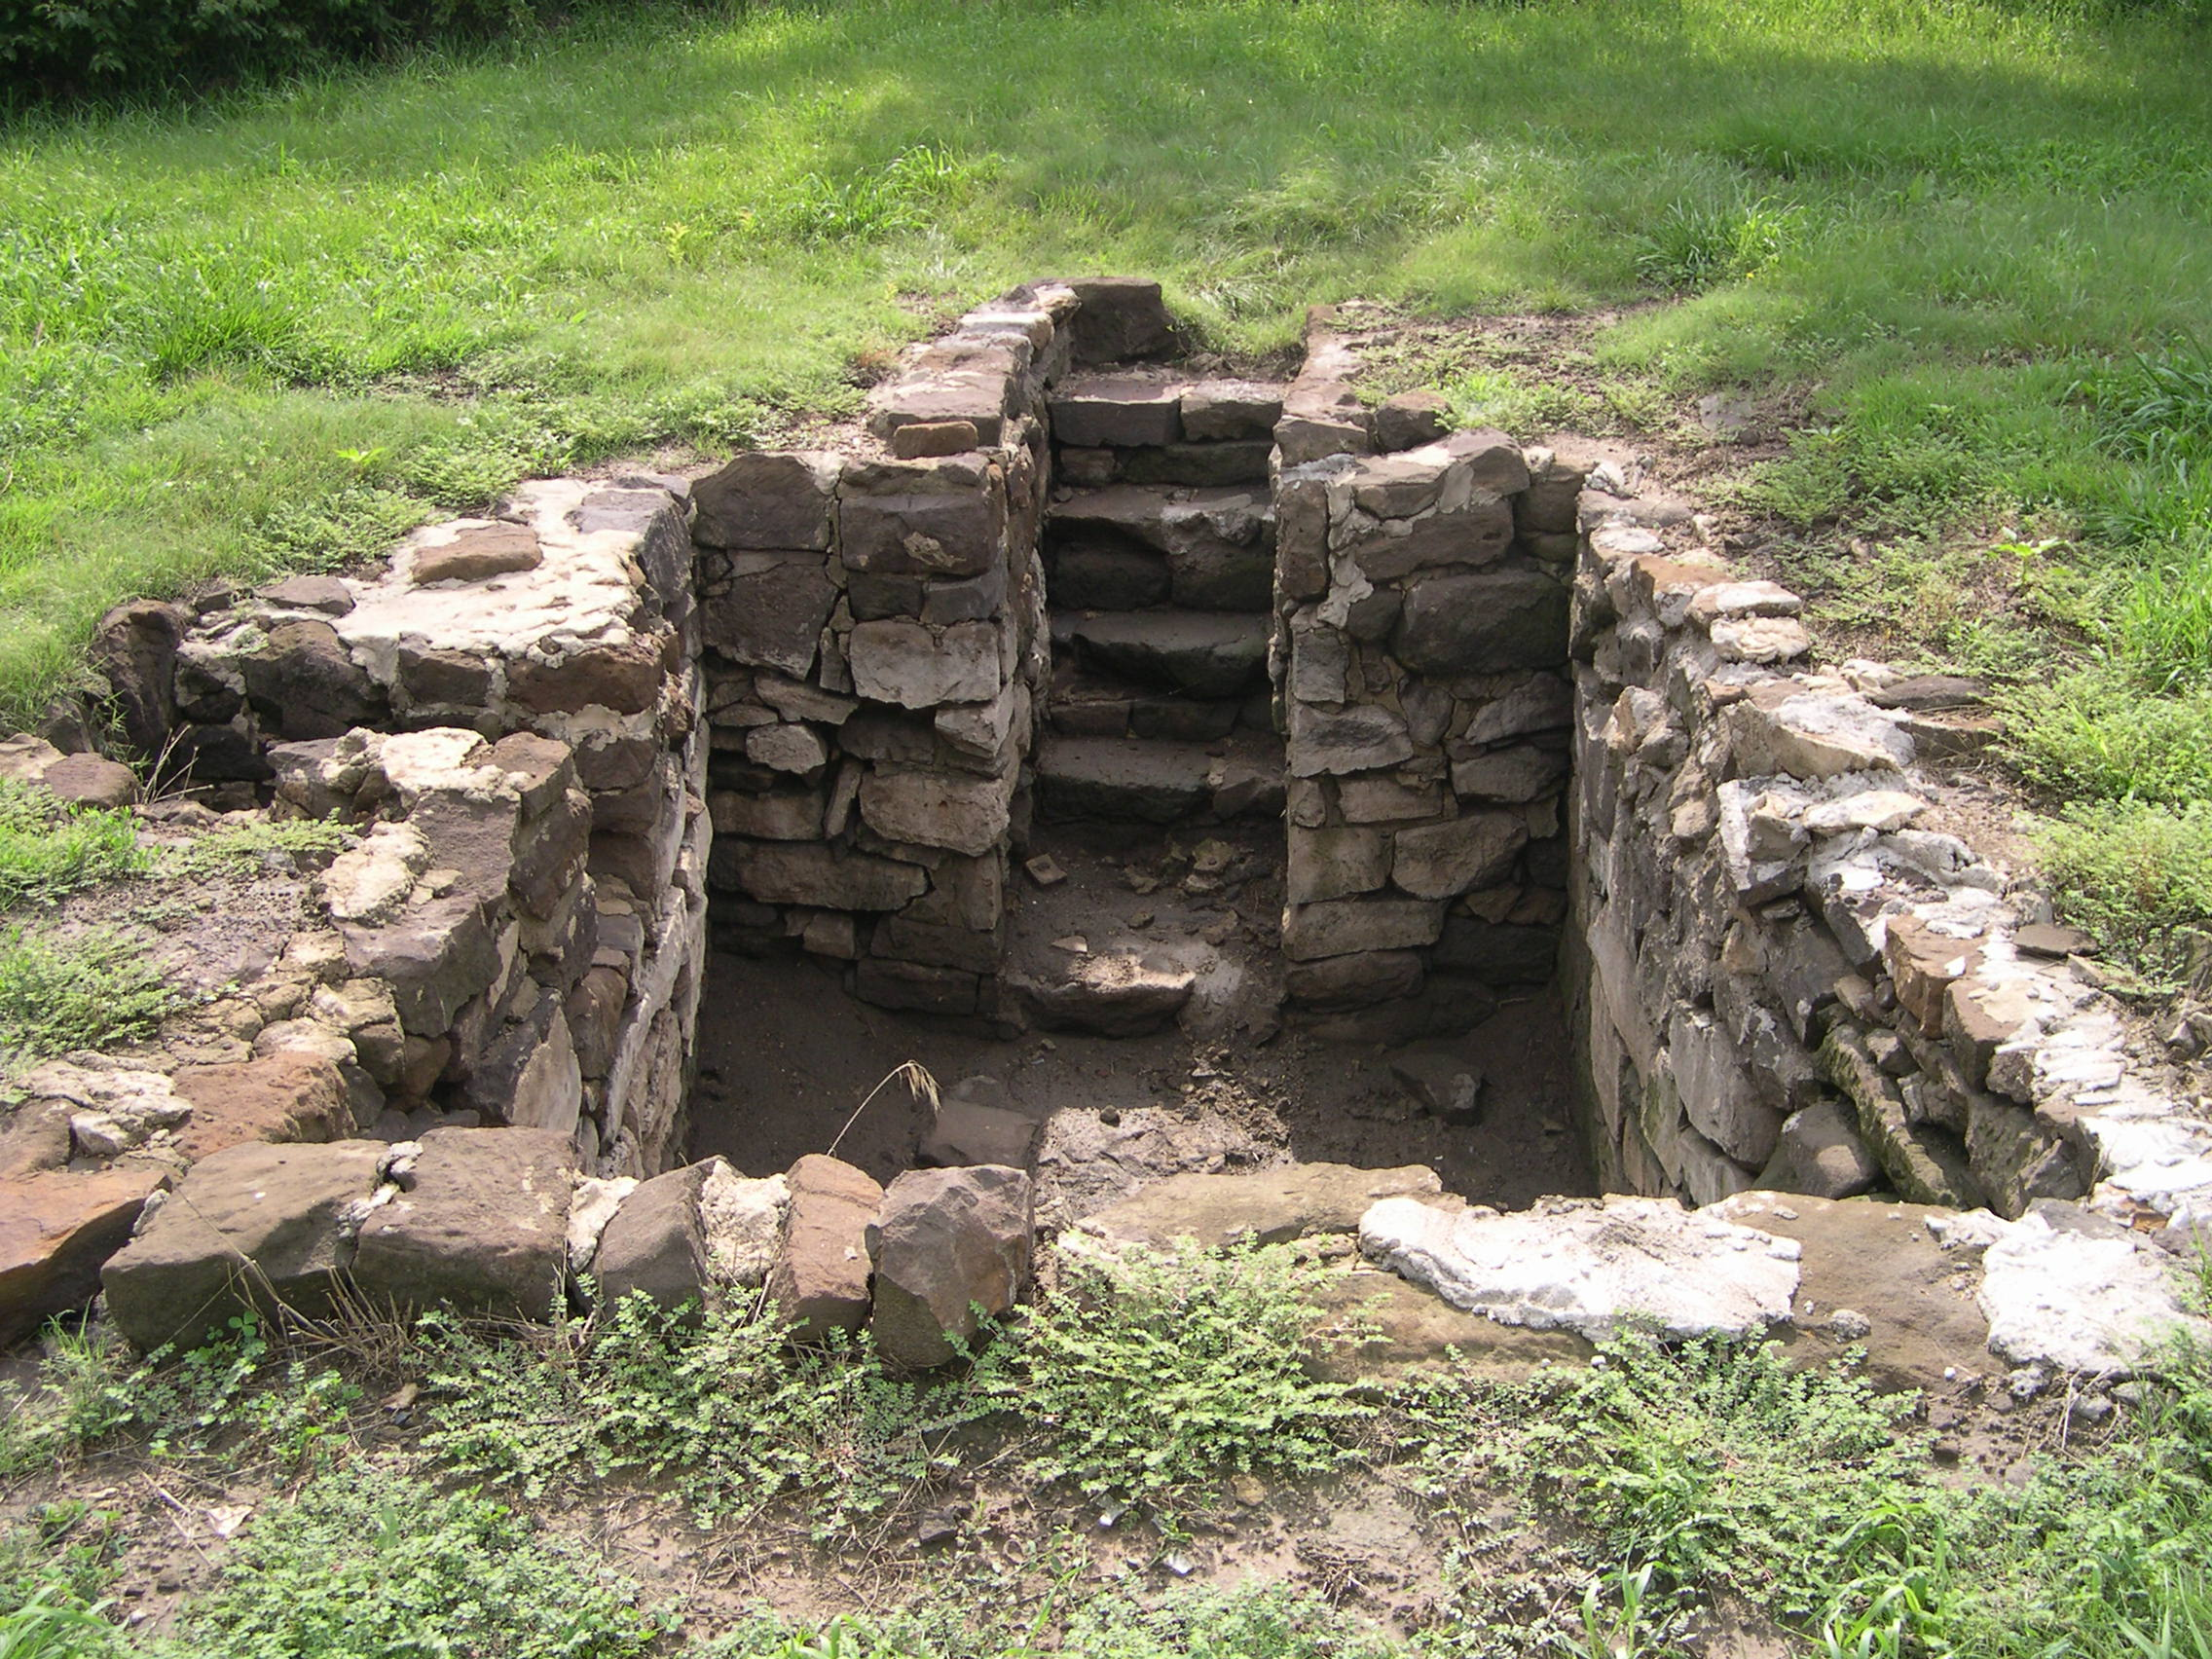 Remains of the Hoglund family dugout one mile west and one-half mile south of Lindsborg, Kansas. Gustav and Maria plus two babies lived there for two years.